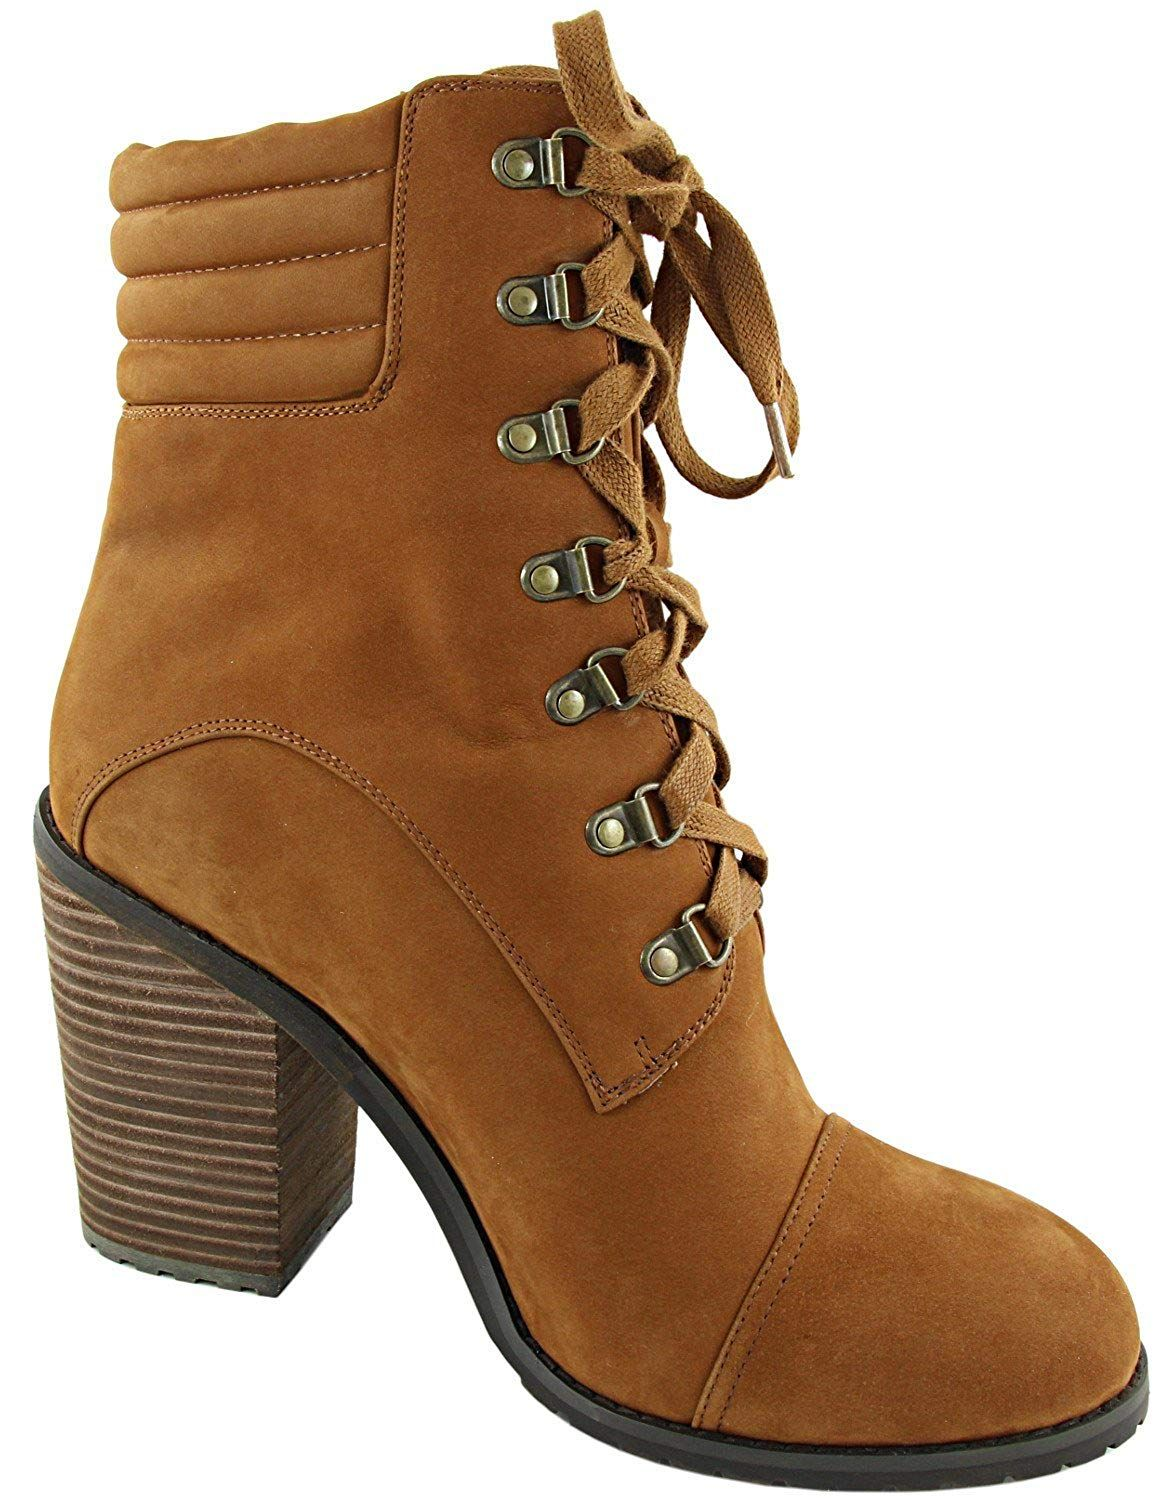 Genuine Leather High Heel Lace up